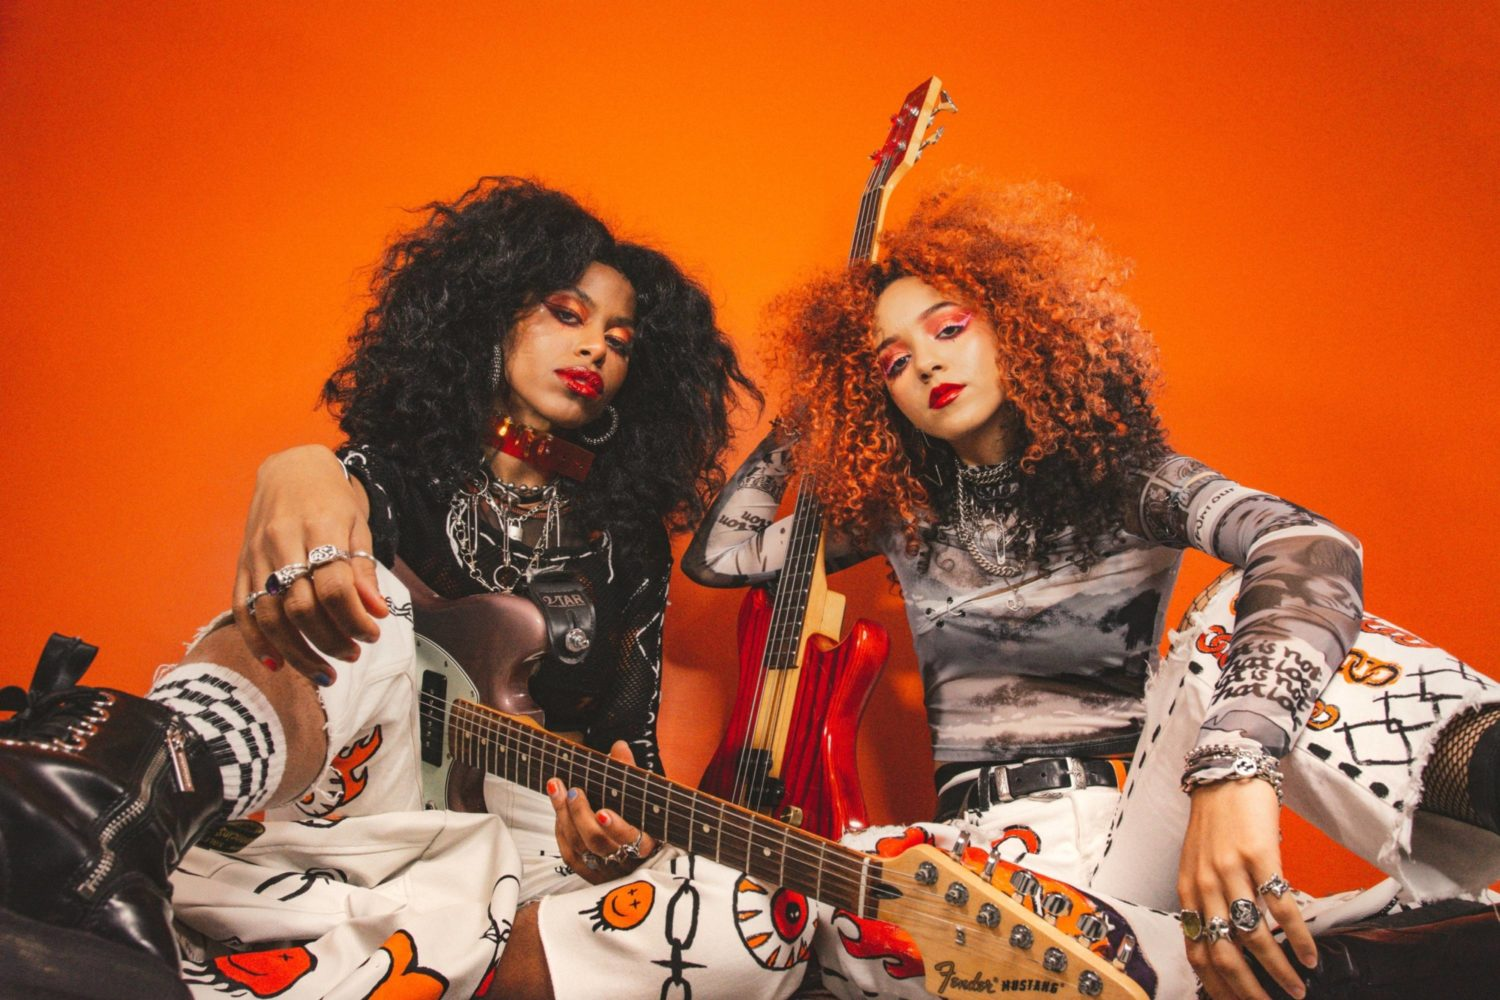 Nova Twins and Yonaka to appear at Sound City+ Conference